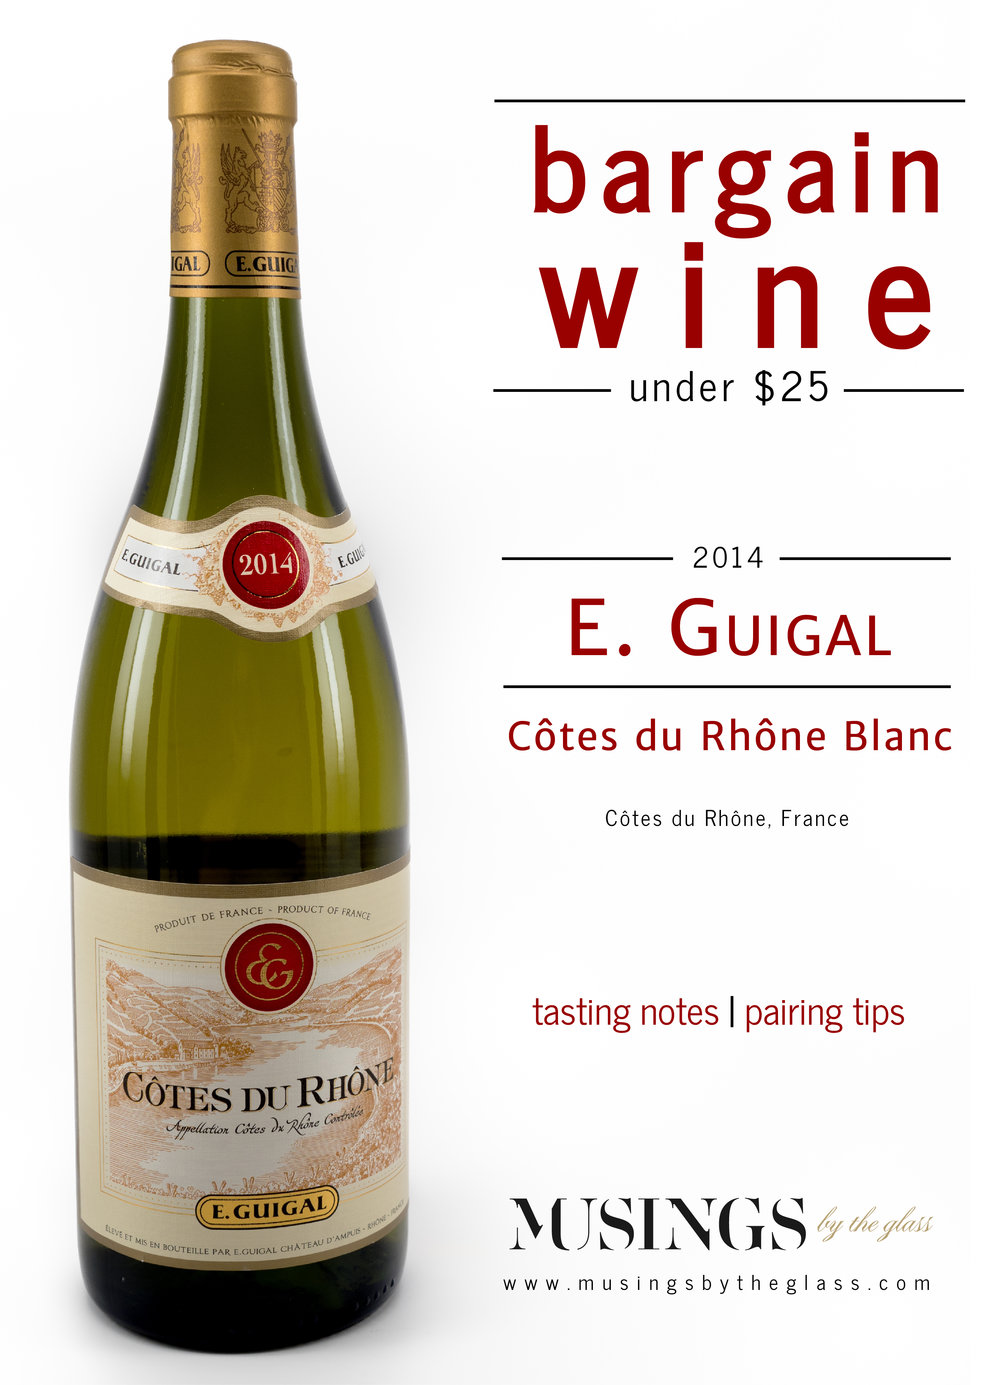 Musings by the Glass - Bargain Wines - E. Guigal Cotes du Rhone Blanc from Rhone Valley, France